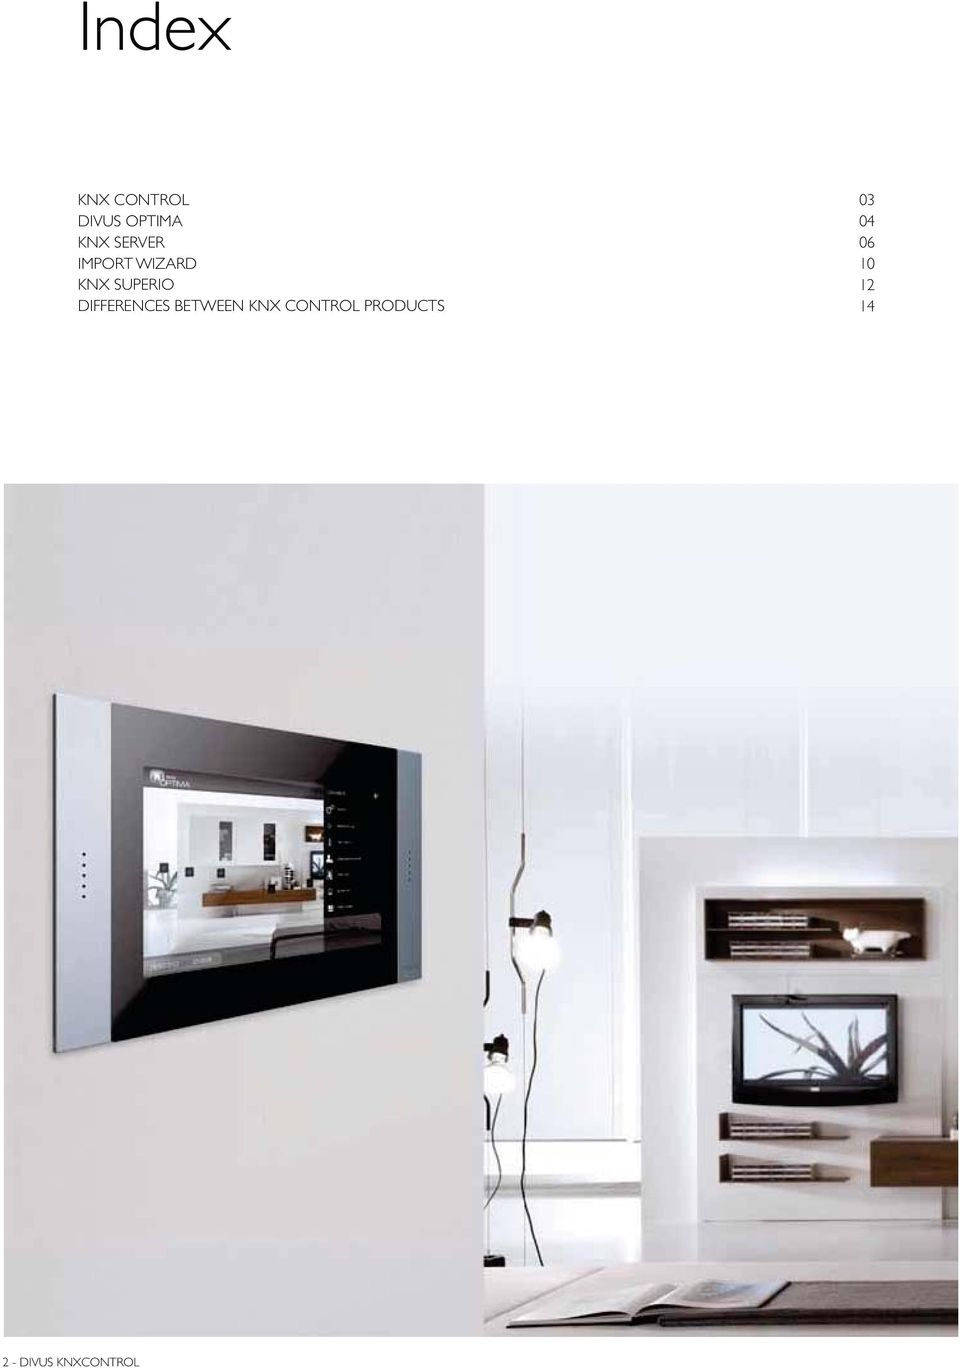 DIFFERENCES BETWEEN KNX CONTROL